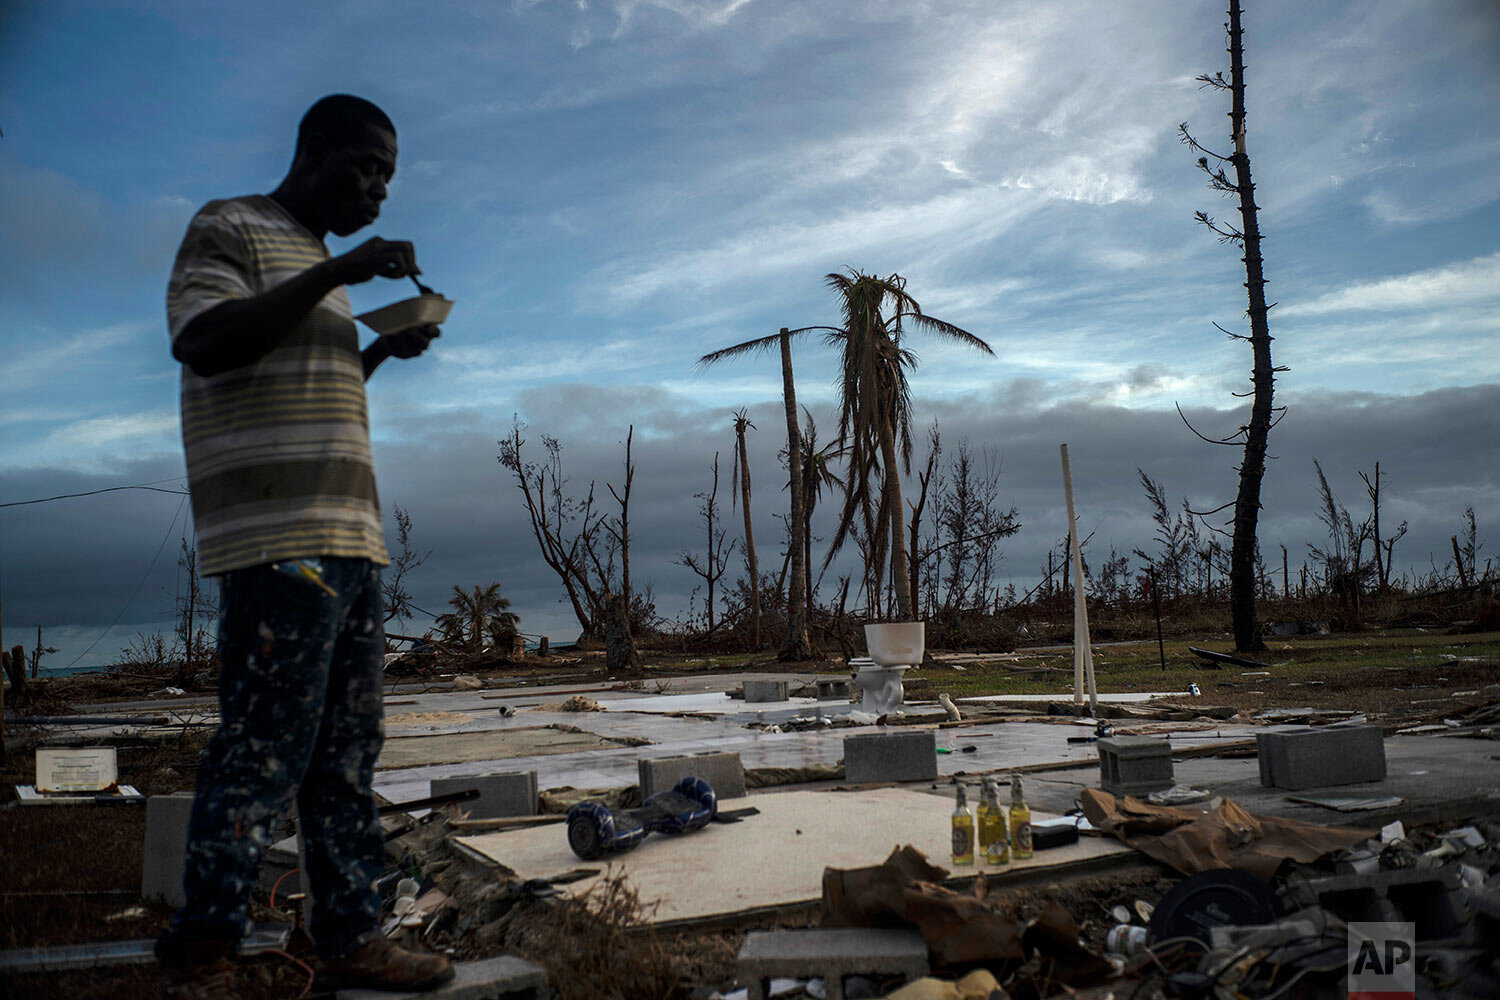 Jeffrey Roberts, 49, eats a plate of food while searching through the rubble of his relatives' home which was destroyed by Hurricane Dorian in Pelican Point, Grand Bahama, Bahamas, Saturday, Sept. 14, 2019.  (AP Photo/Ramon Espinosa)